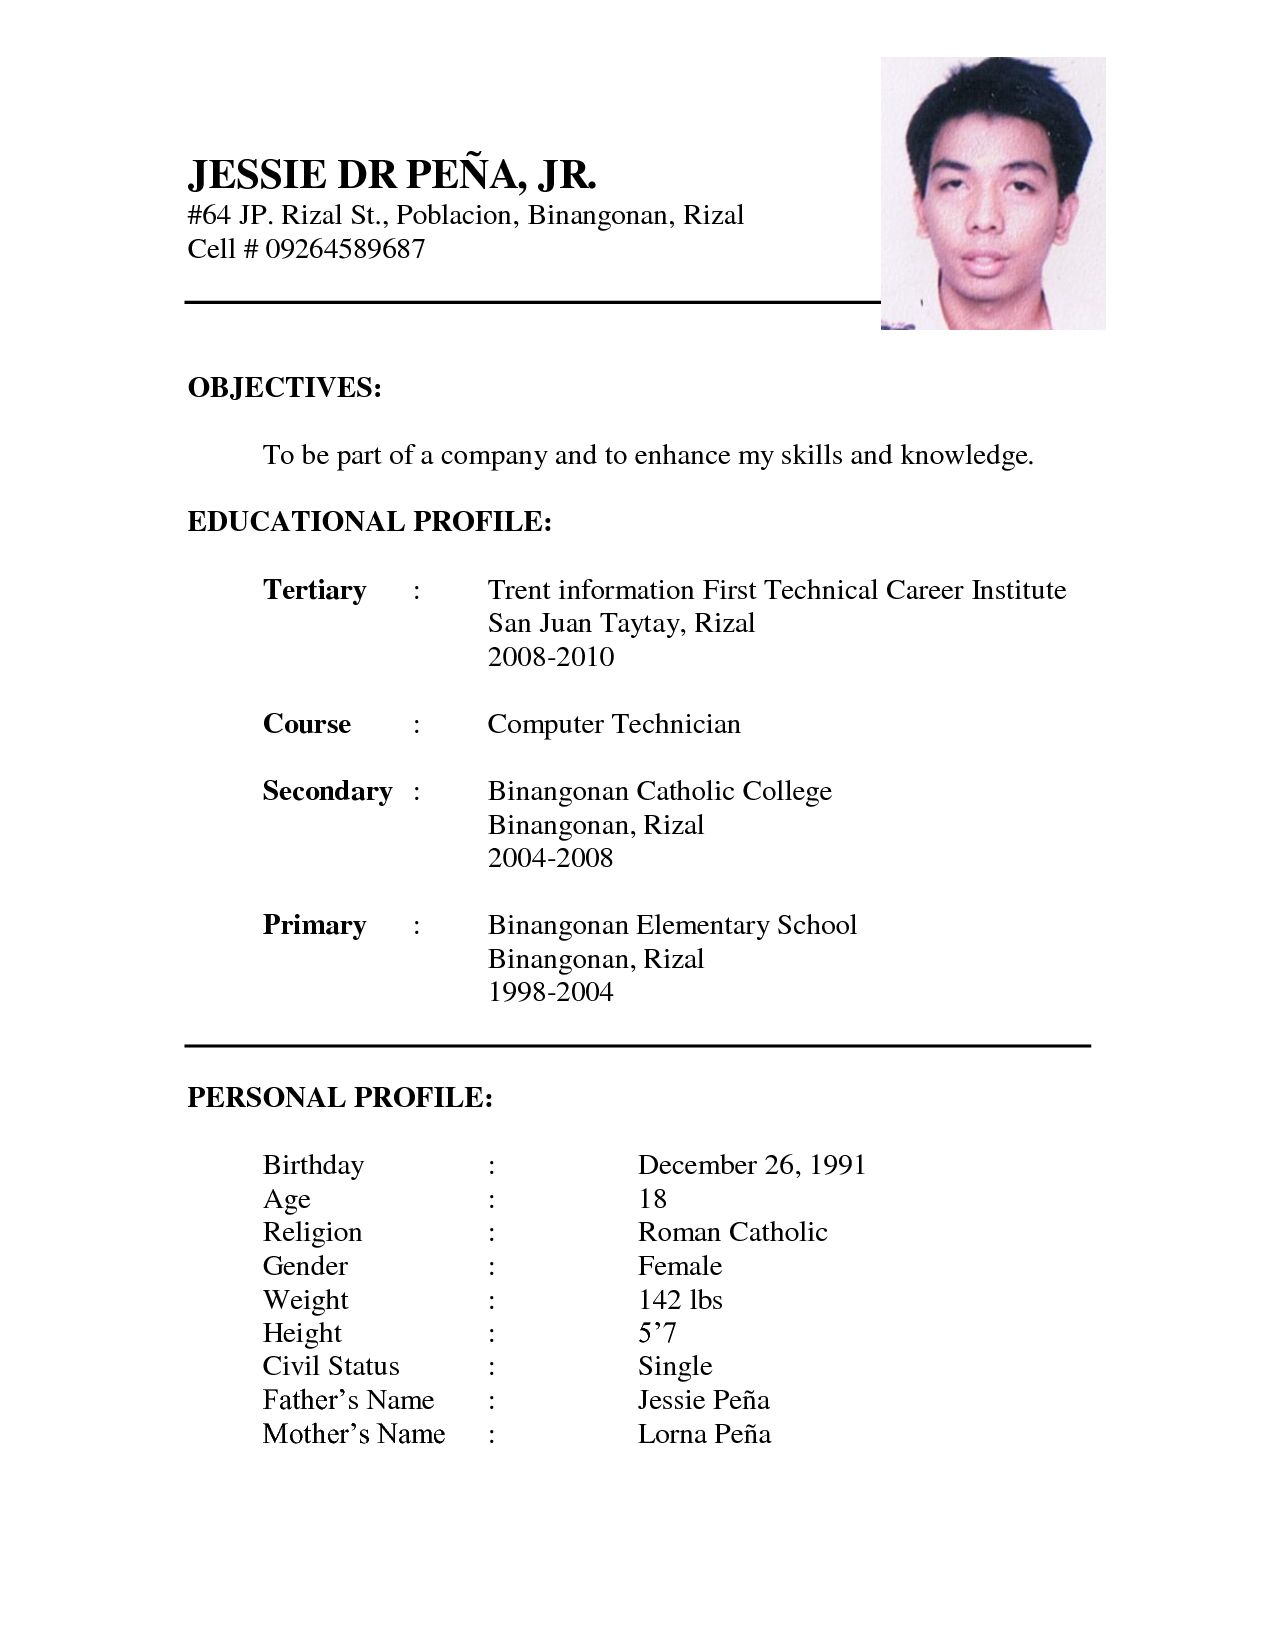 Sample Resume Format | Resume Template